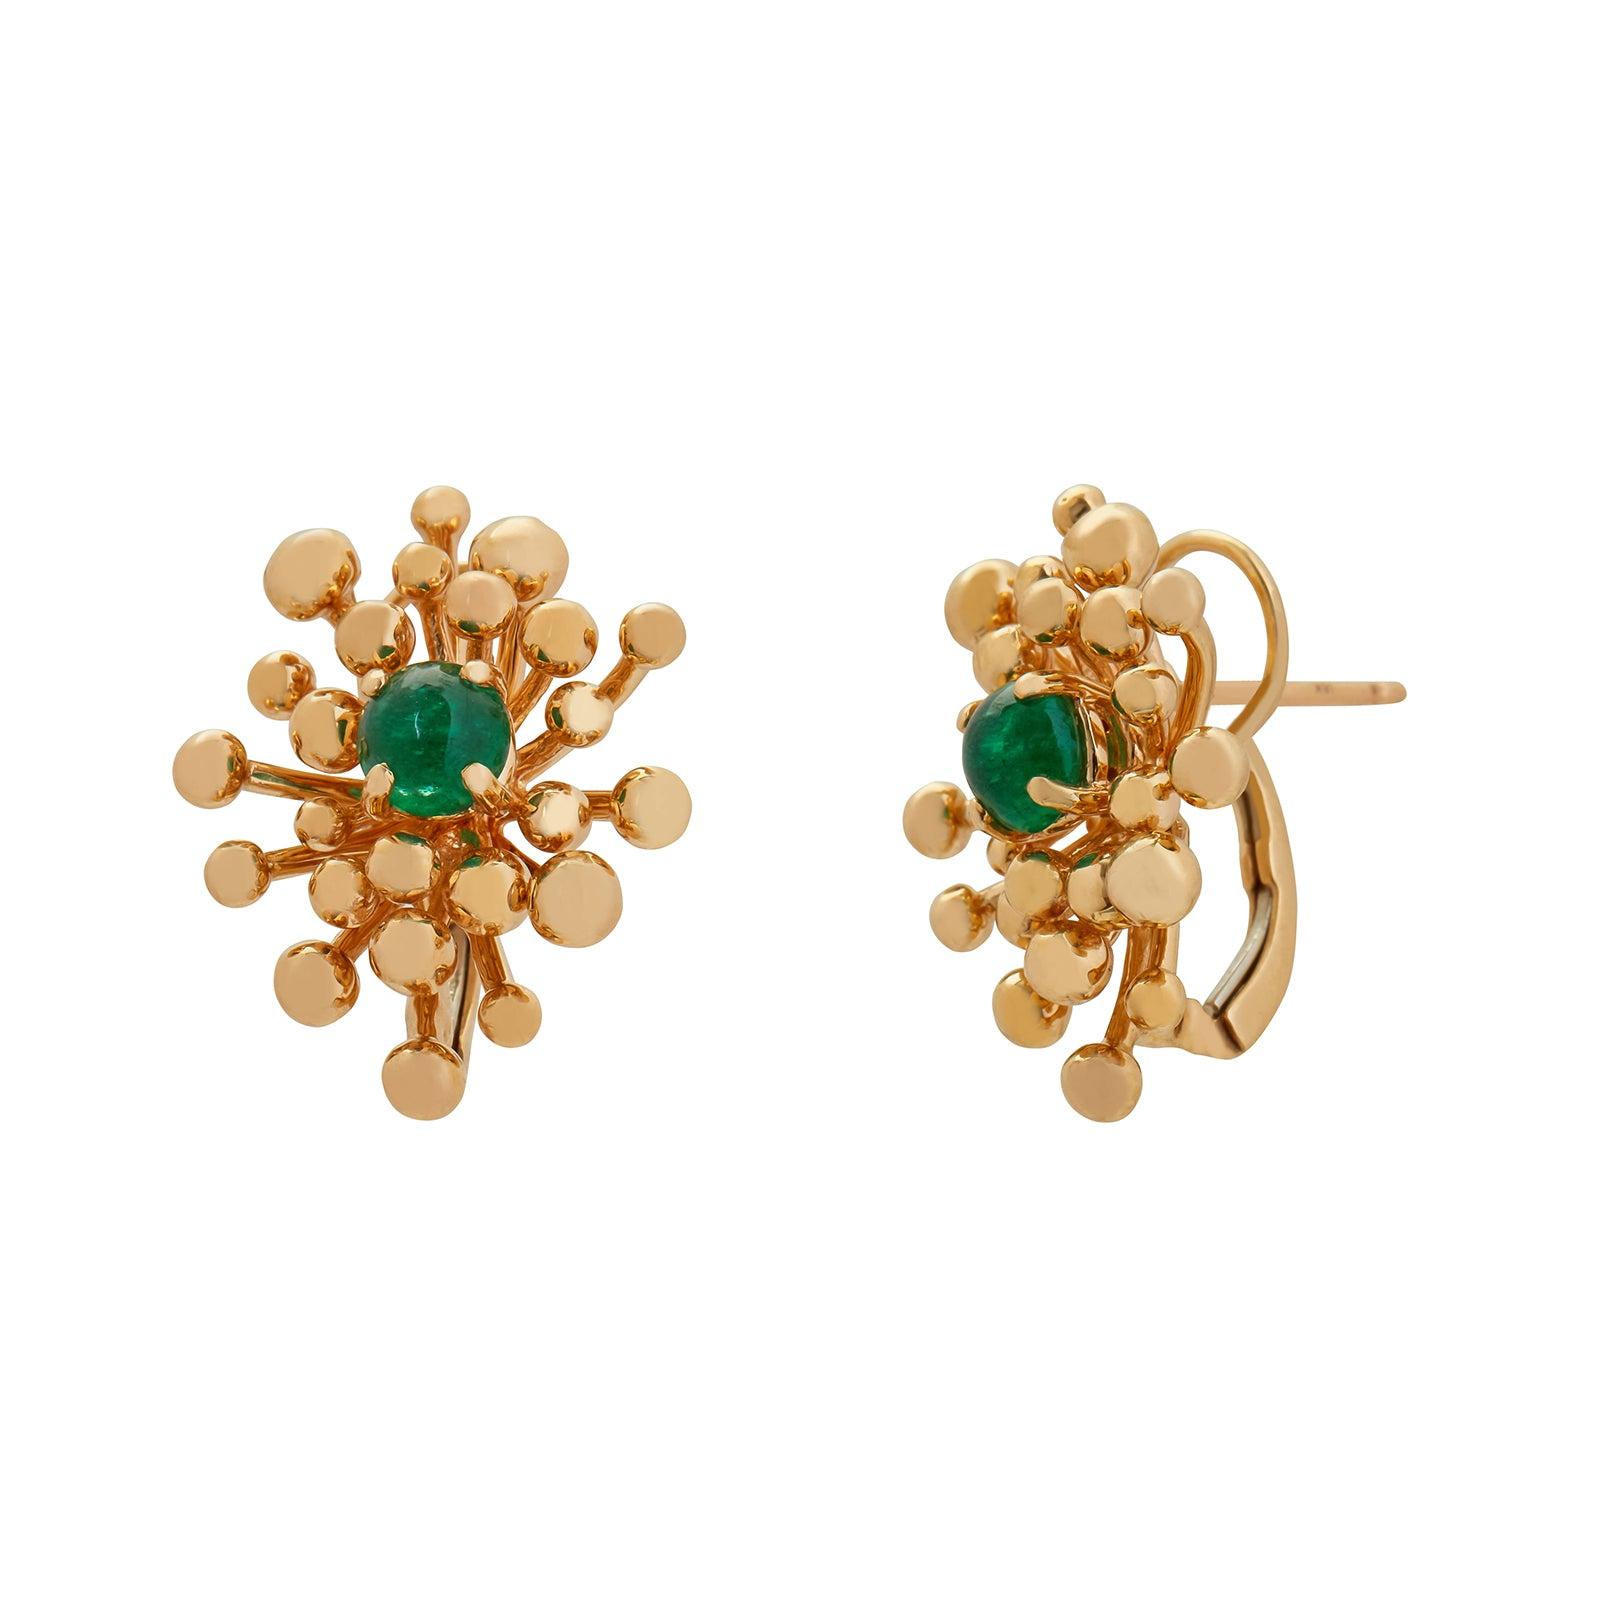 VRAM Nocturne Studs - Emerald - Earrings - Broken English Jewelry